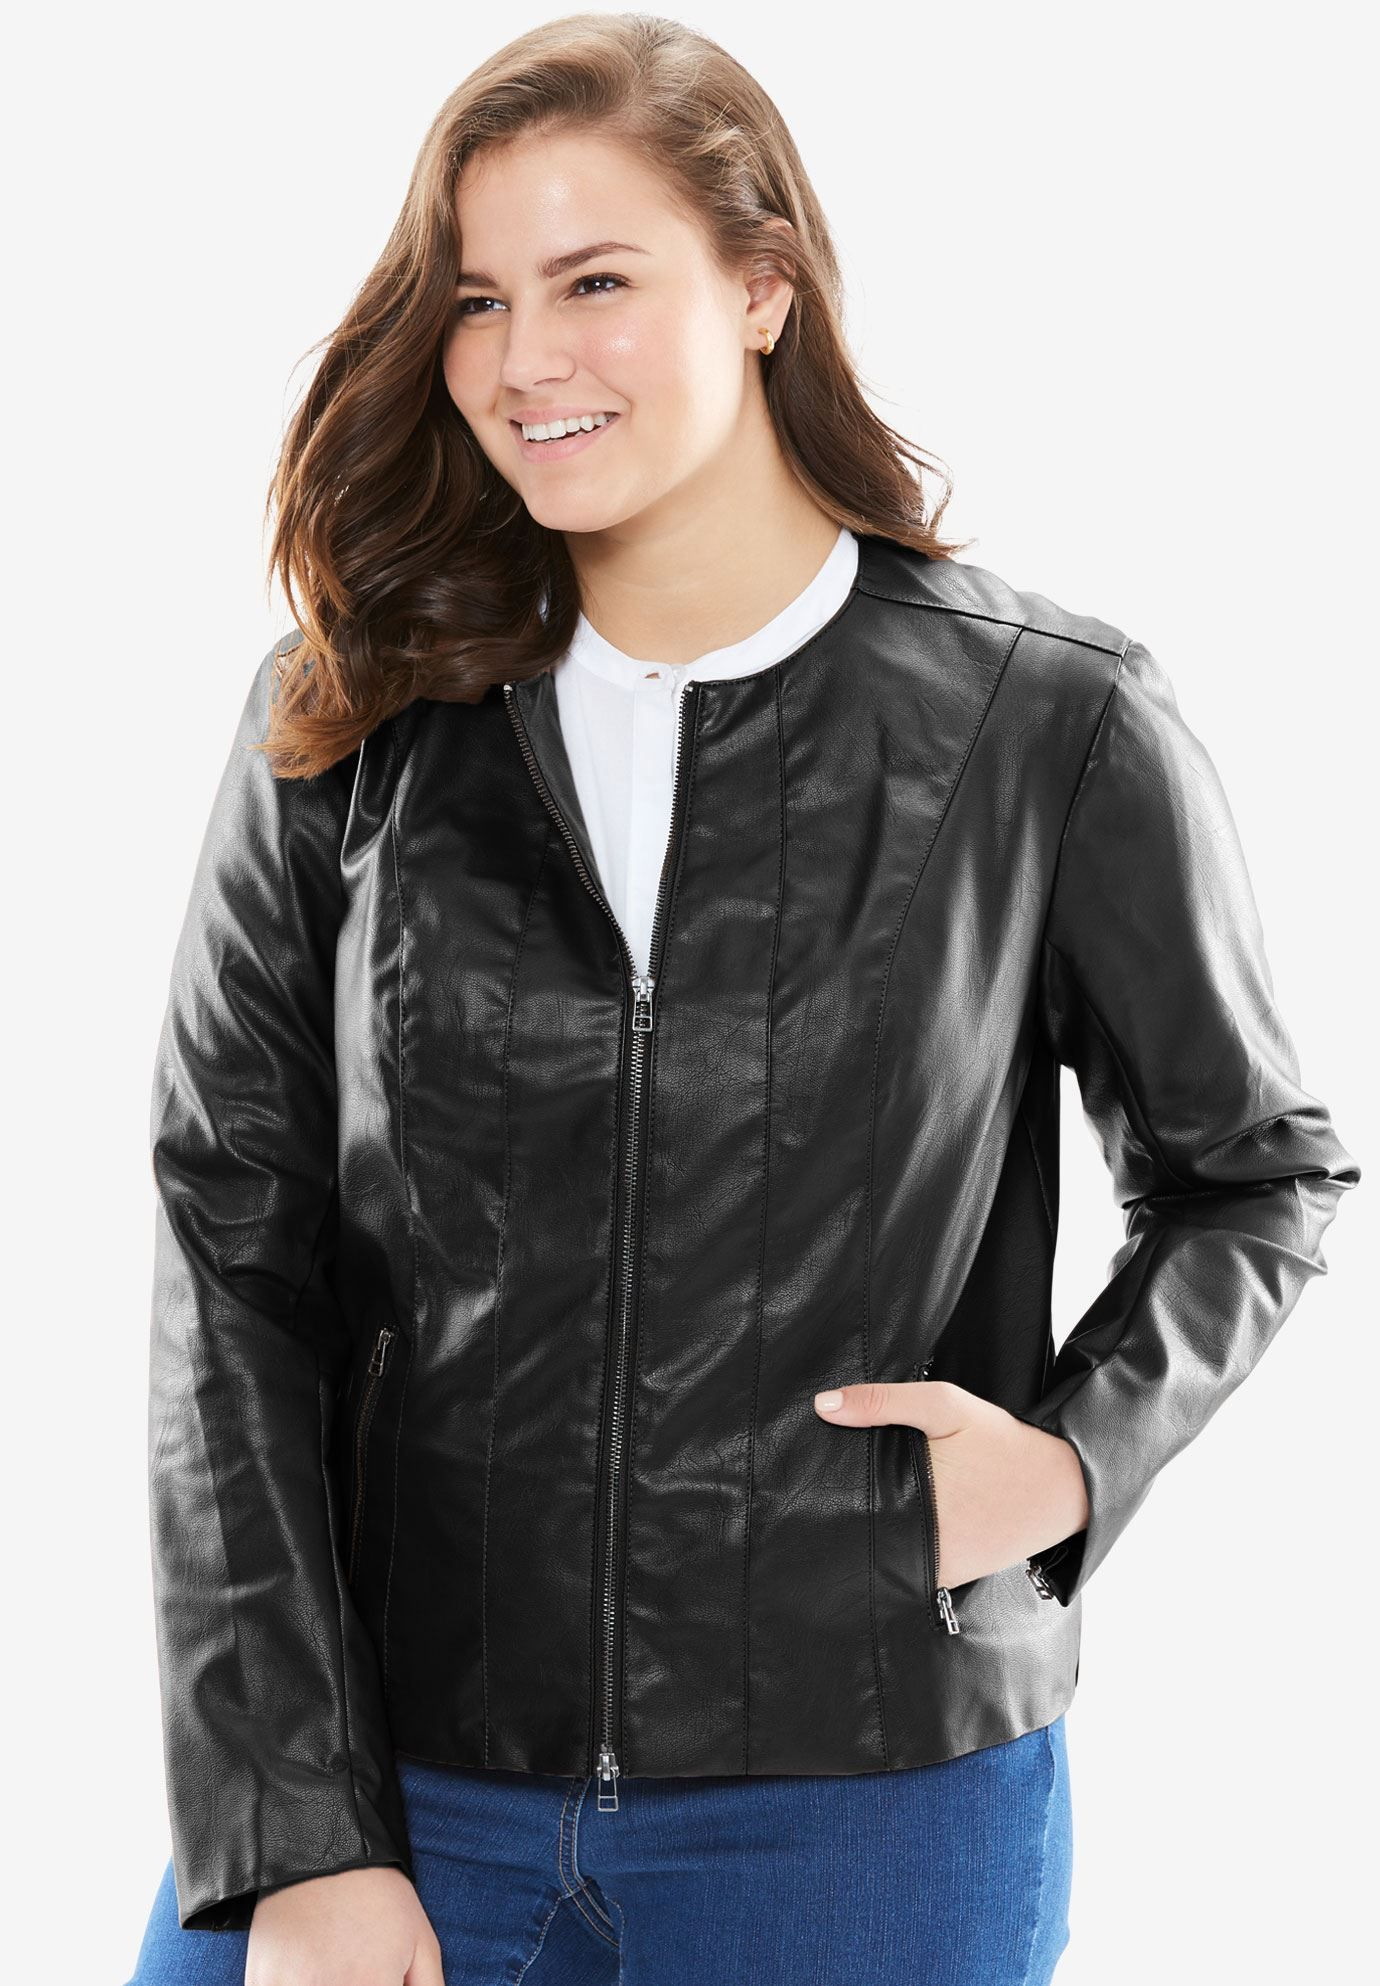 Plus Size Faux leather jacket Plus size leather jacket